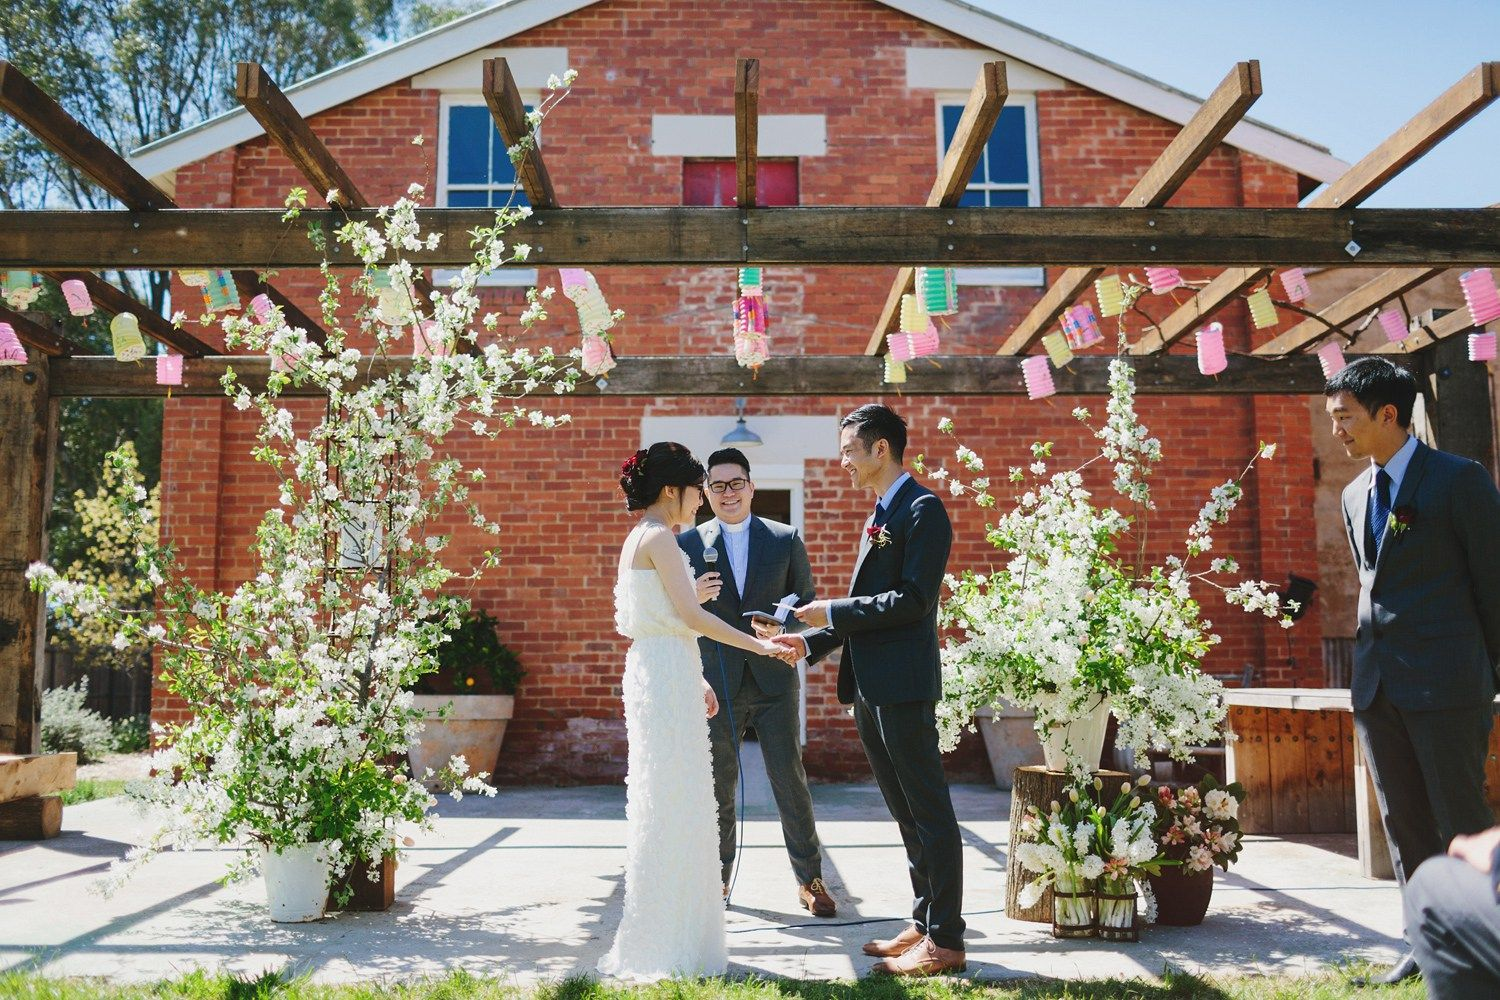 Outdoor wedding ceremony | fabmood.com #wedding #rusticwedding #factorywedding